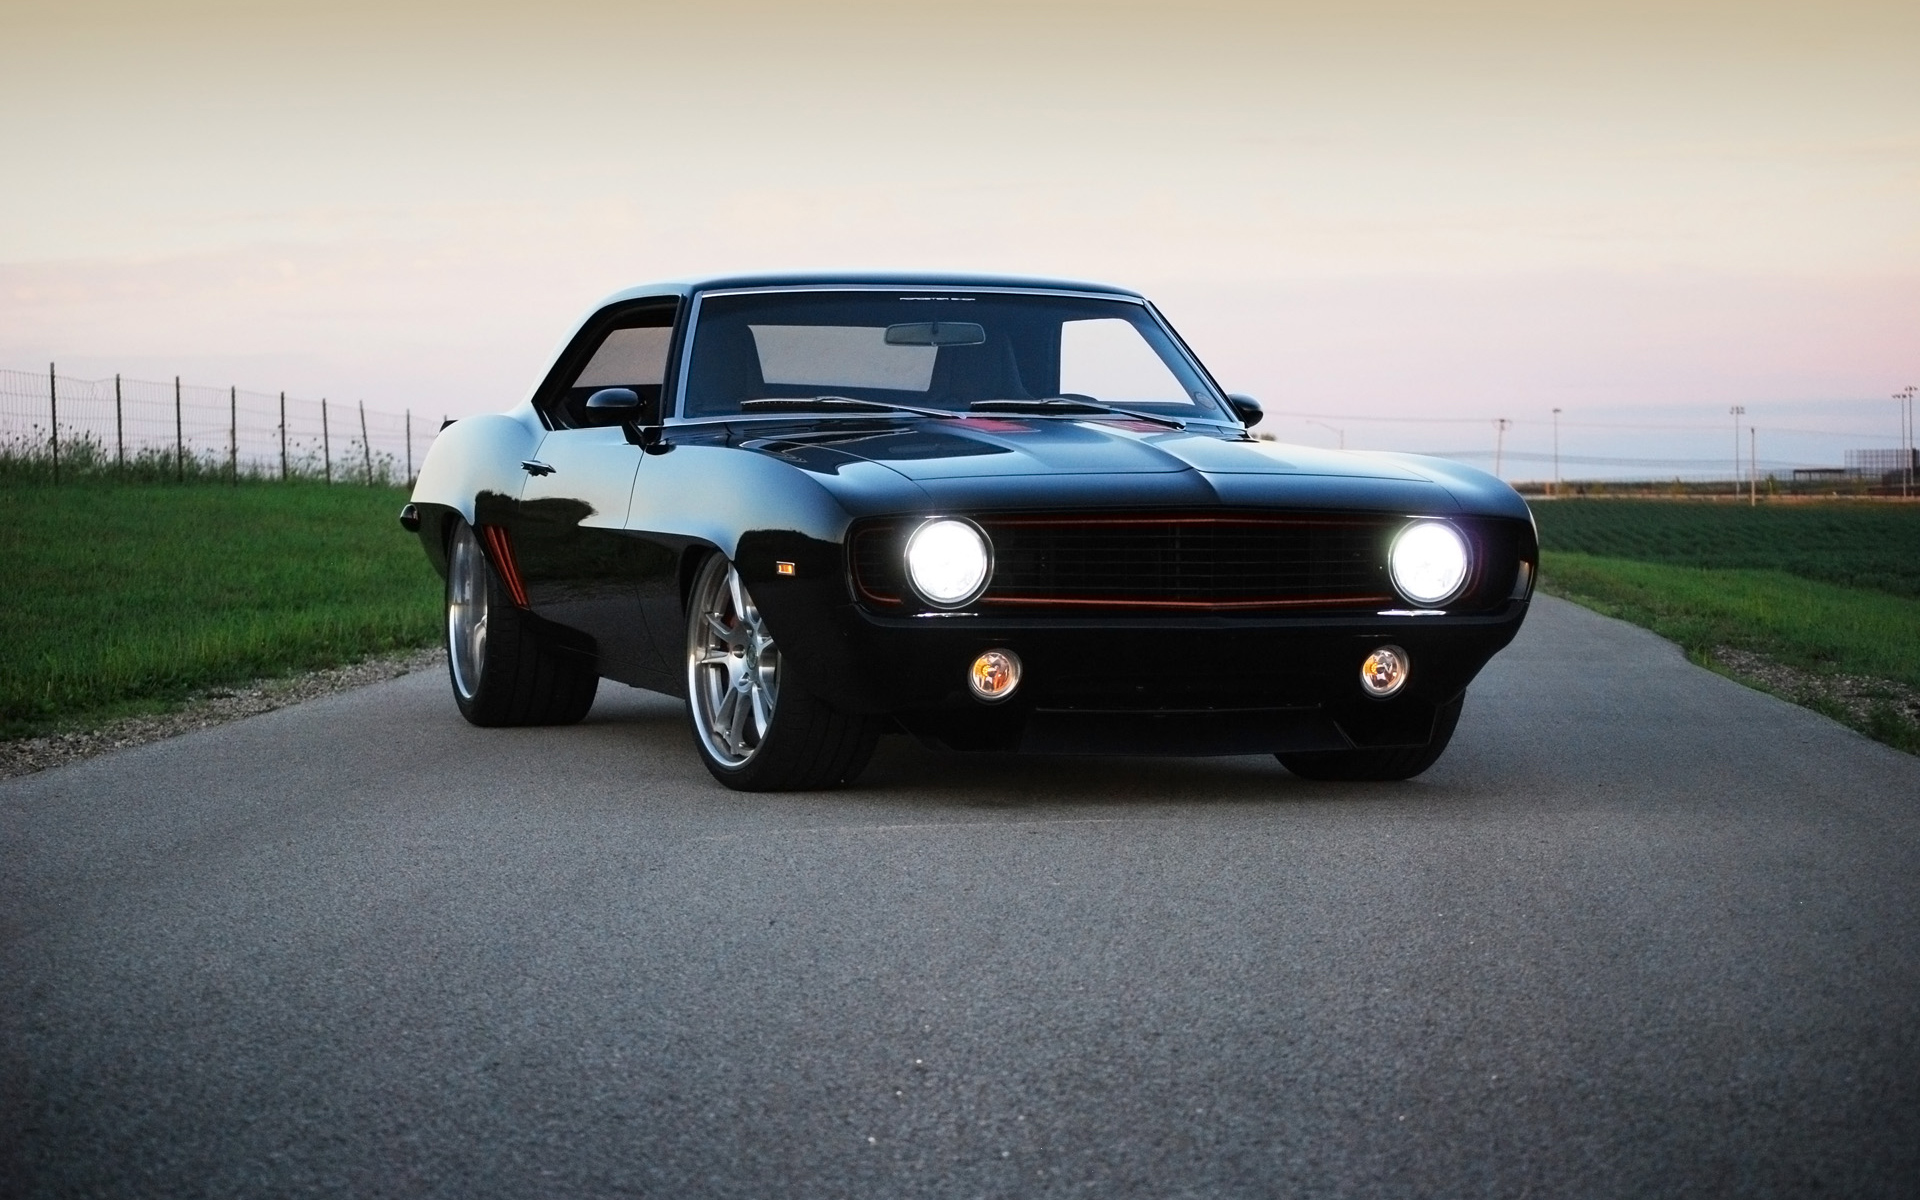 1969 Chevrolet Camaro SS Wallpaper Wide Wallpaper Collections 1920x1200